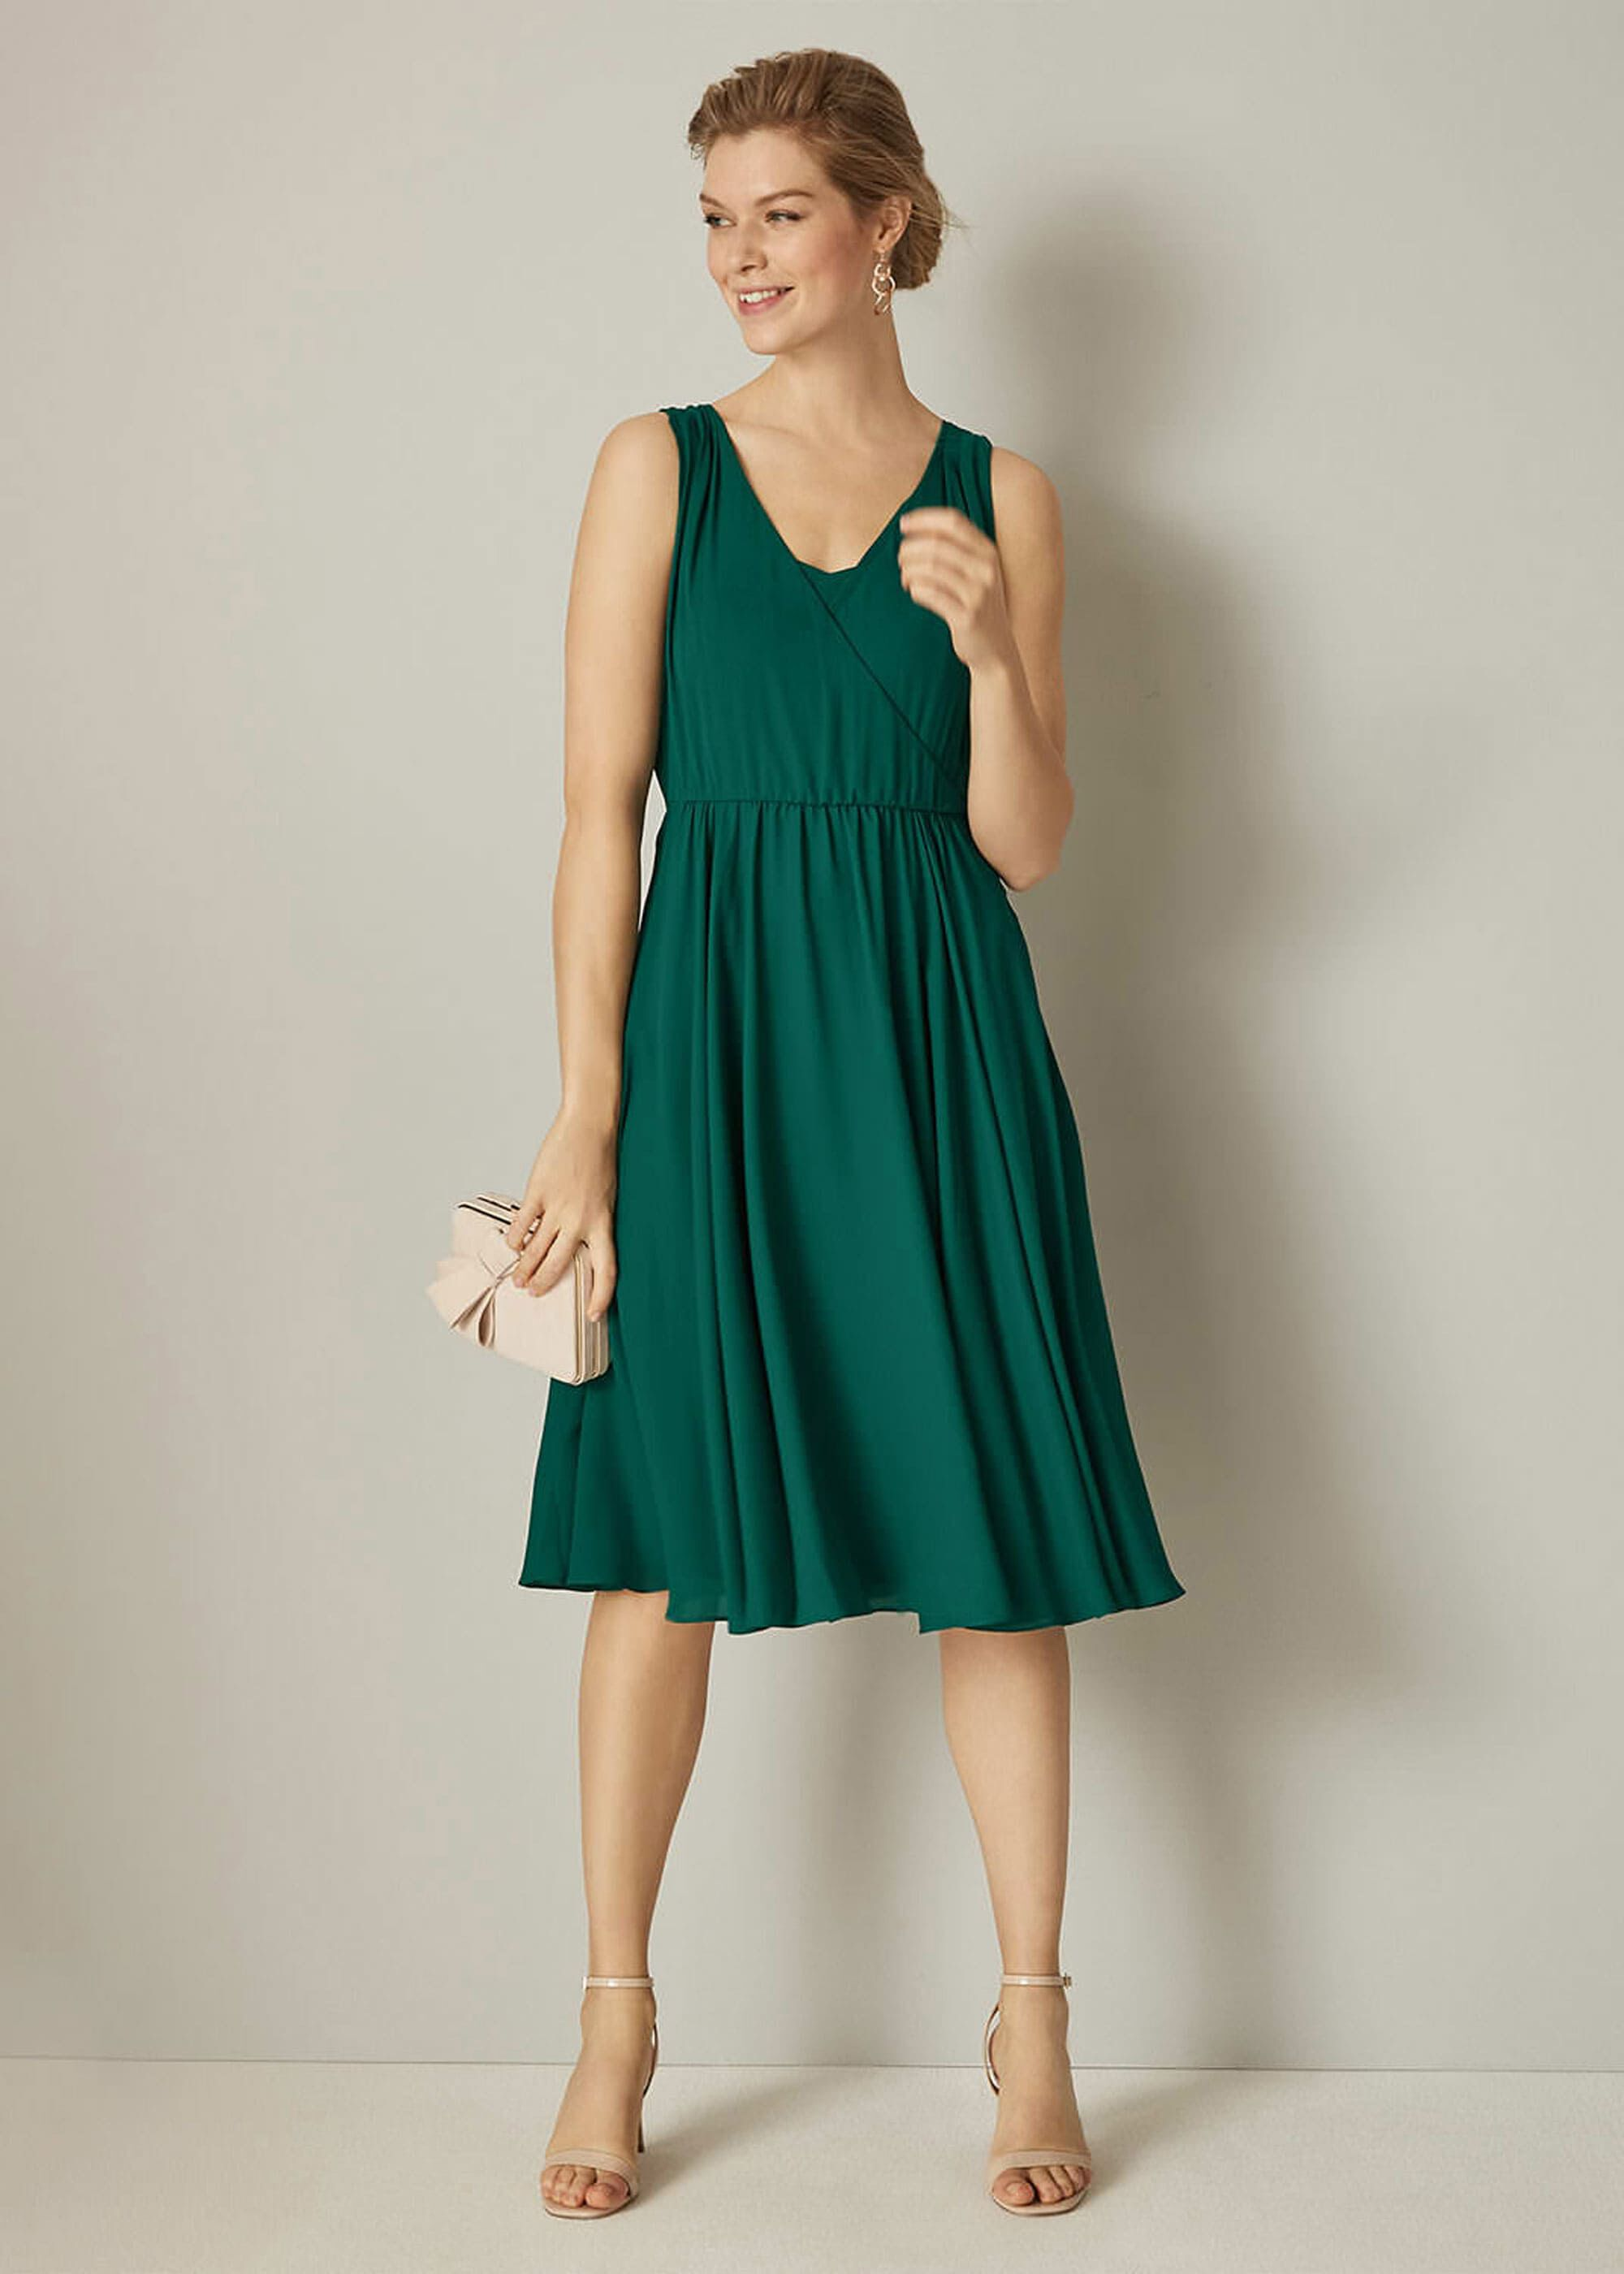 Phase Eight Rosa Bridesmaid Dress, Green, Fit & Flare